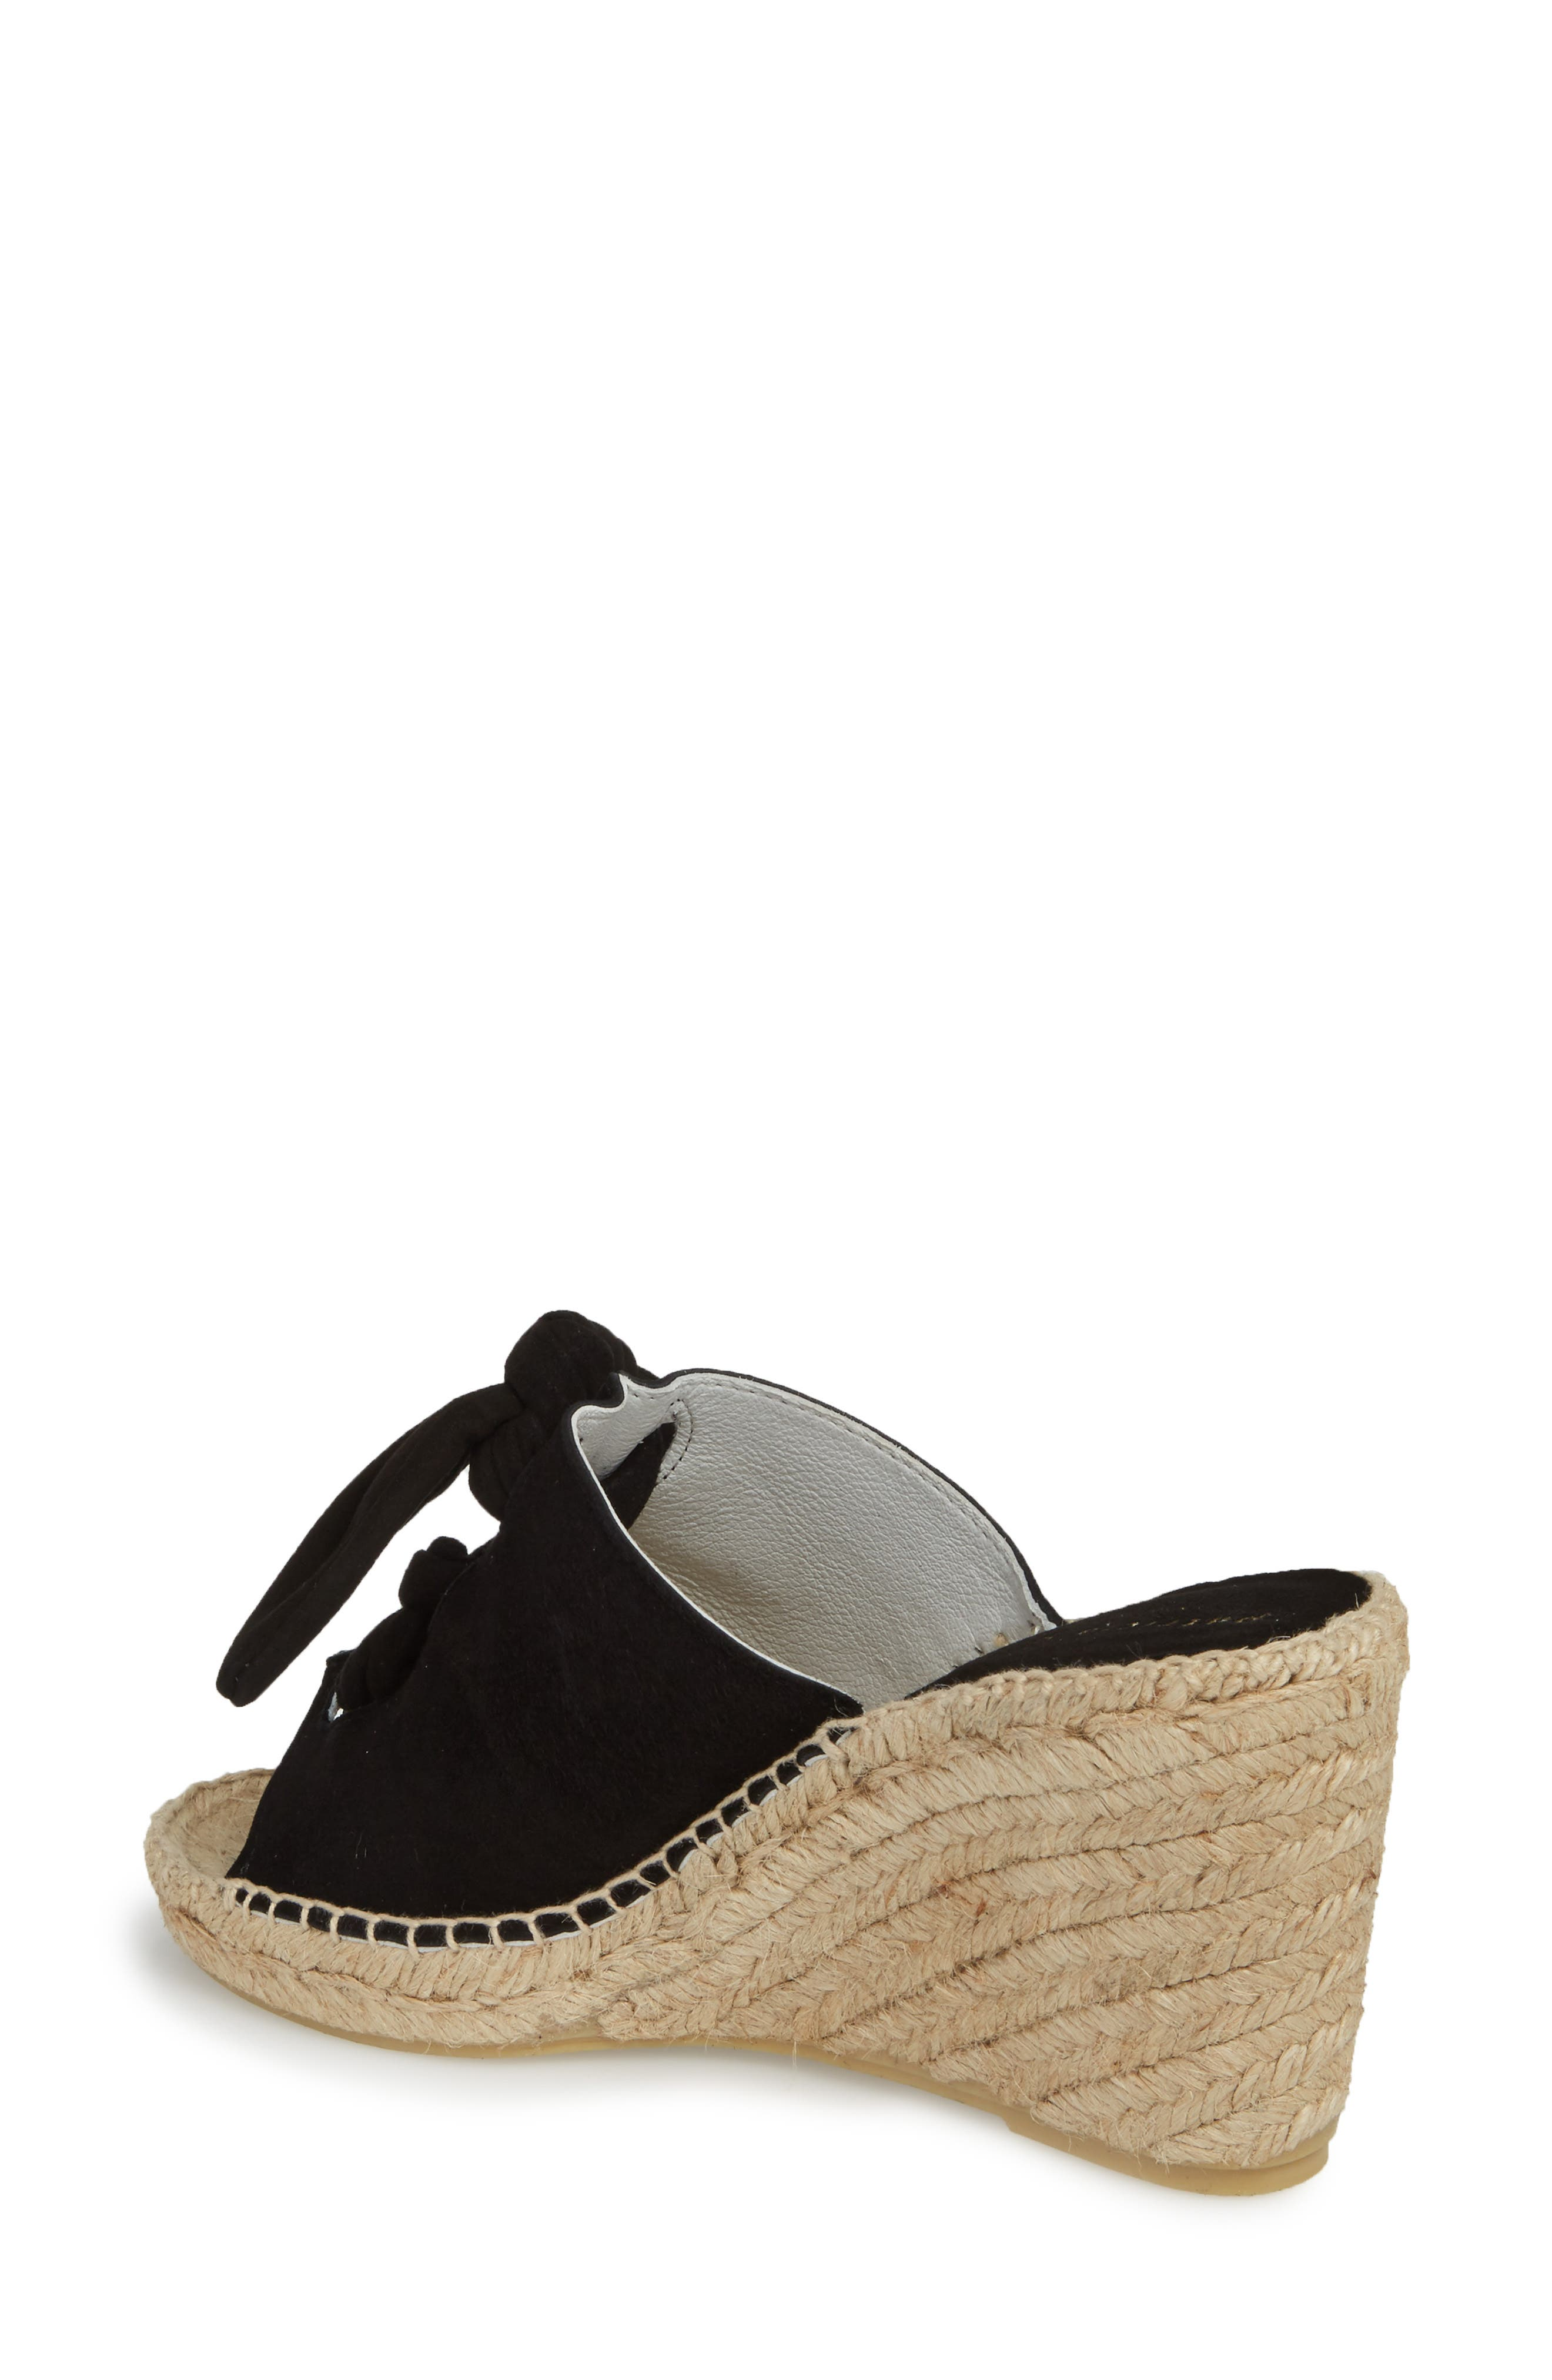 Flirt Espadrille Wedge Sandal,                             Alternate thumbnail 2, color,                             Black Suede